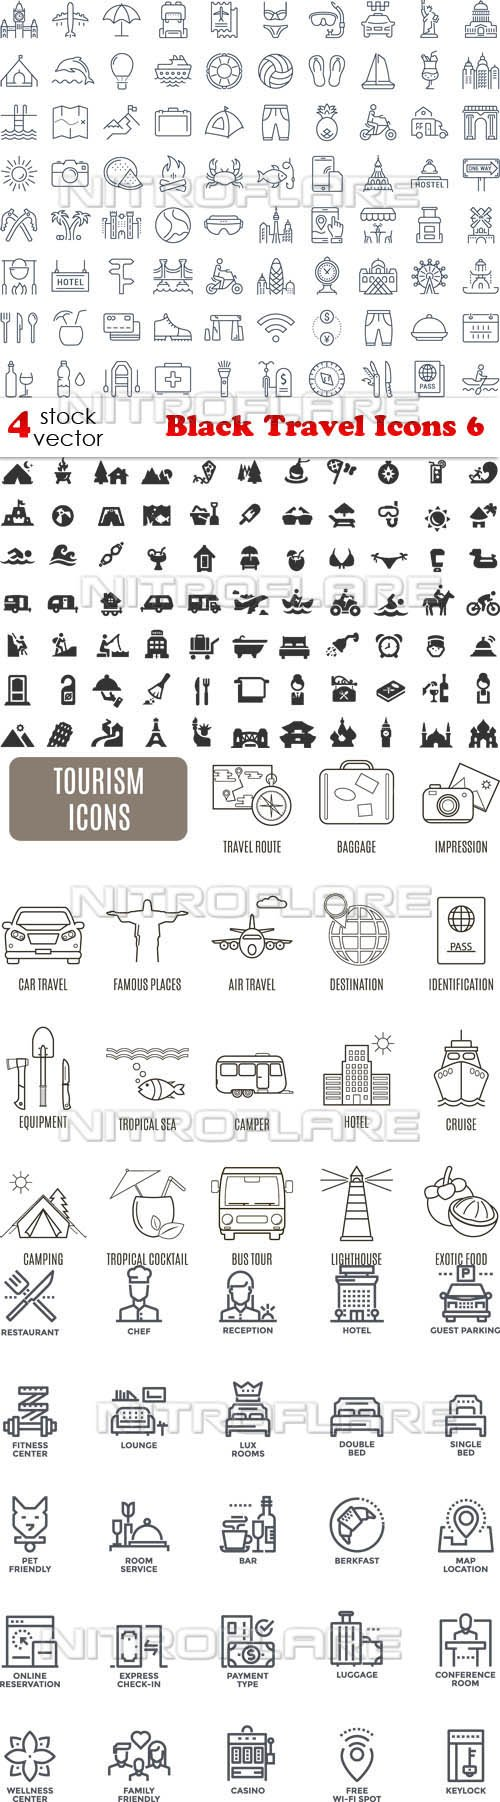 Vectors - Black Travel Icons 6